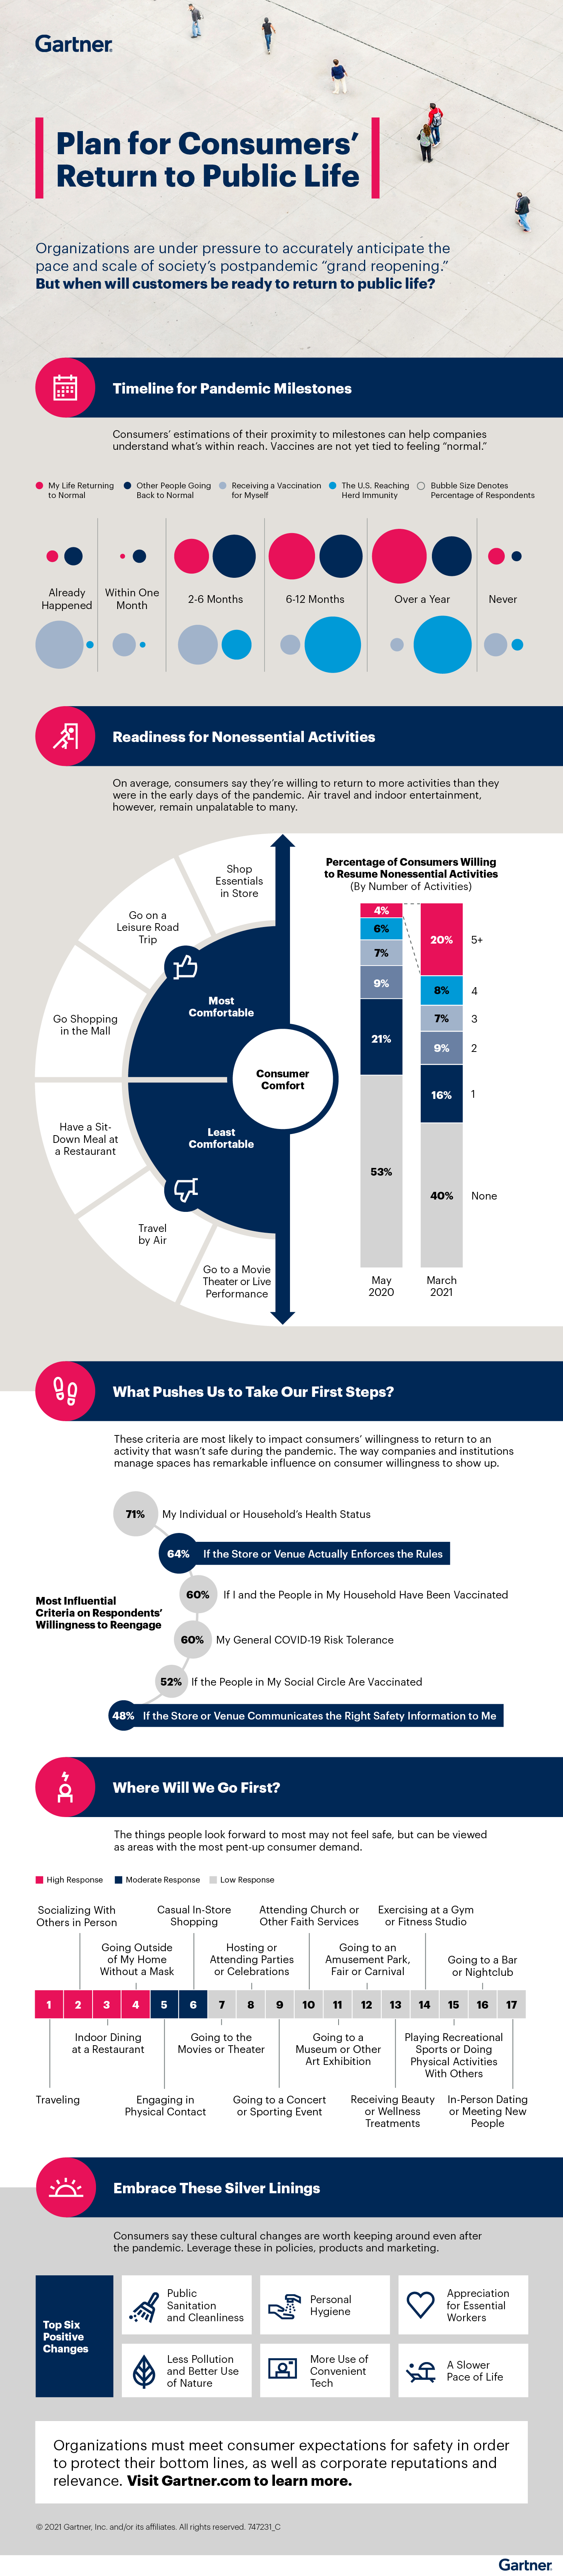 Infographic: Plan for Consumers' Return to Public Life